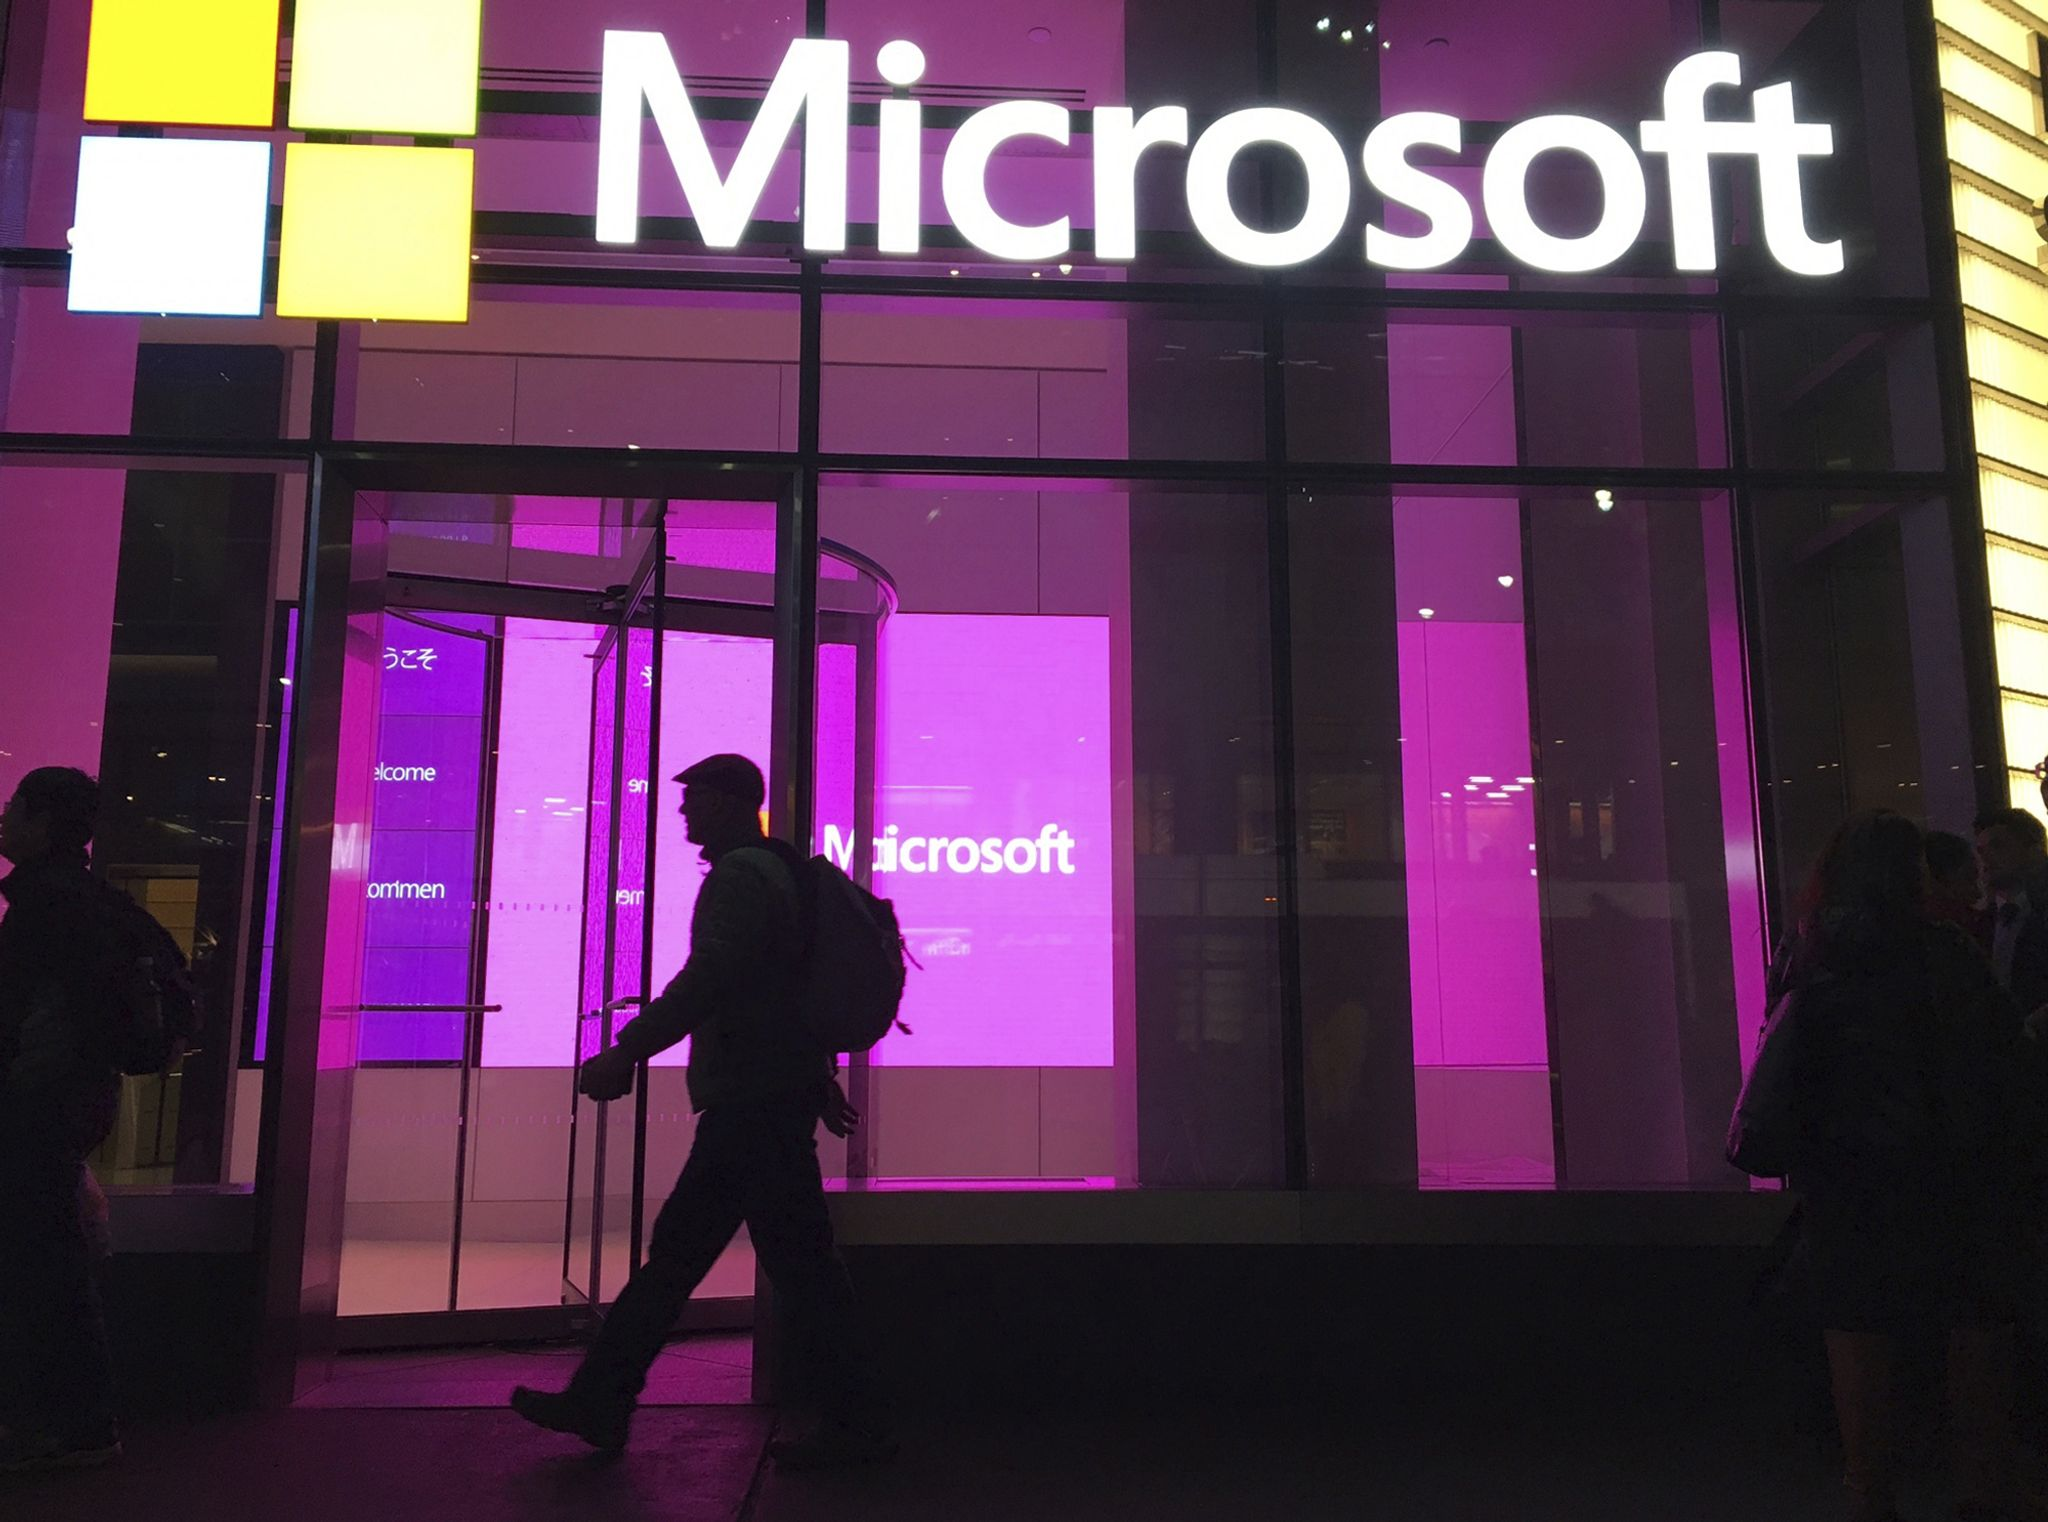 Microsoft workers protest company's Army contract in open letter to execs